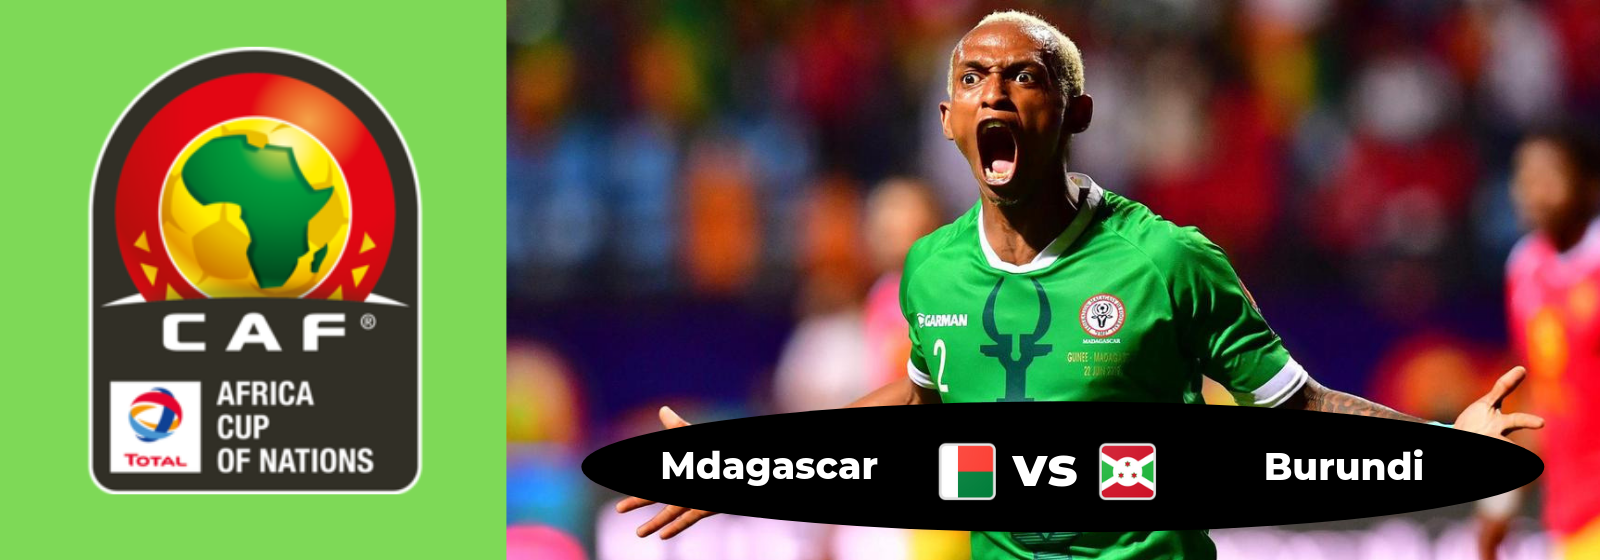 Africa Cup of Nations Madagascar Vs. Burundi Asian Connect